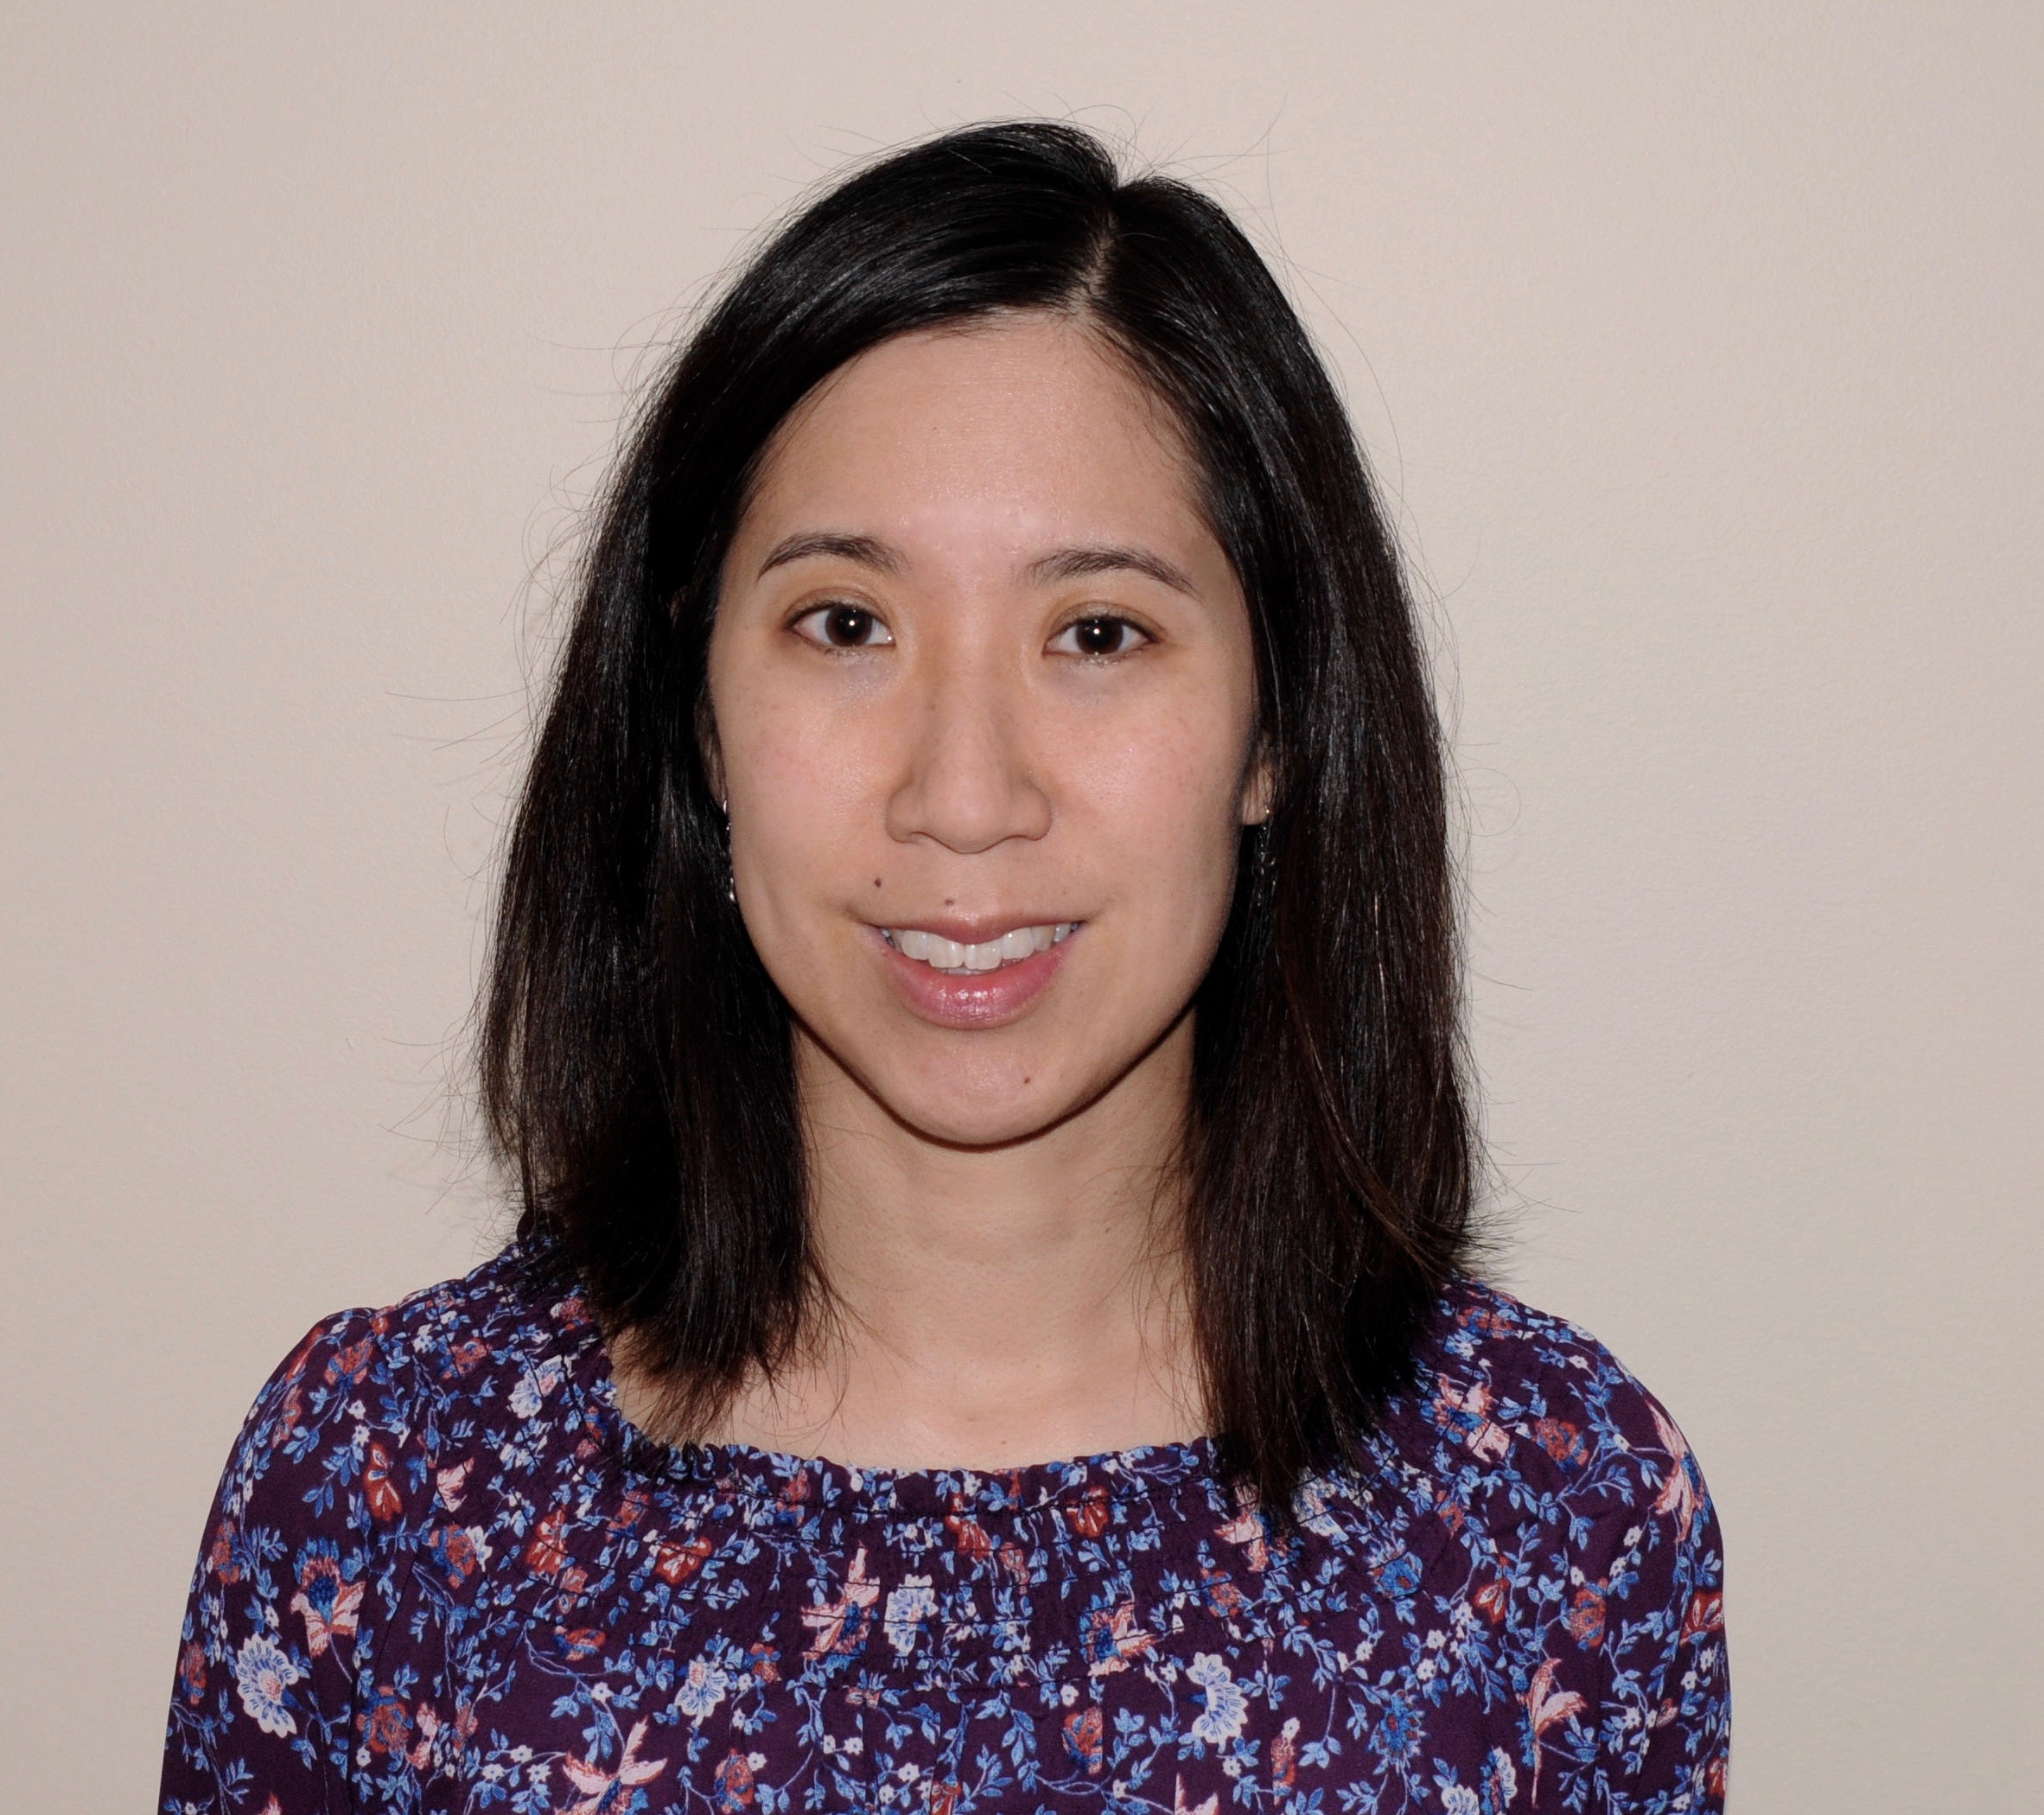 peggy wu md dr wu was born and raised in the northwest suburbs of chicago she completed her undergraduate studies at carleton college in minnesota a ba in